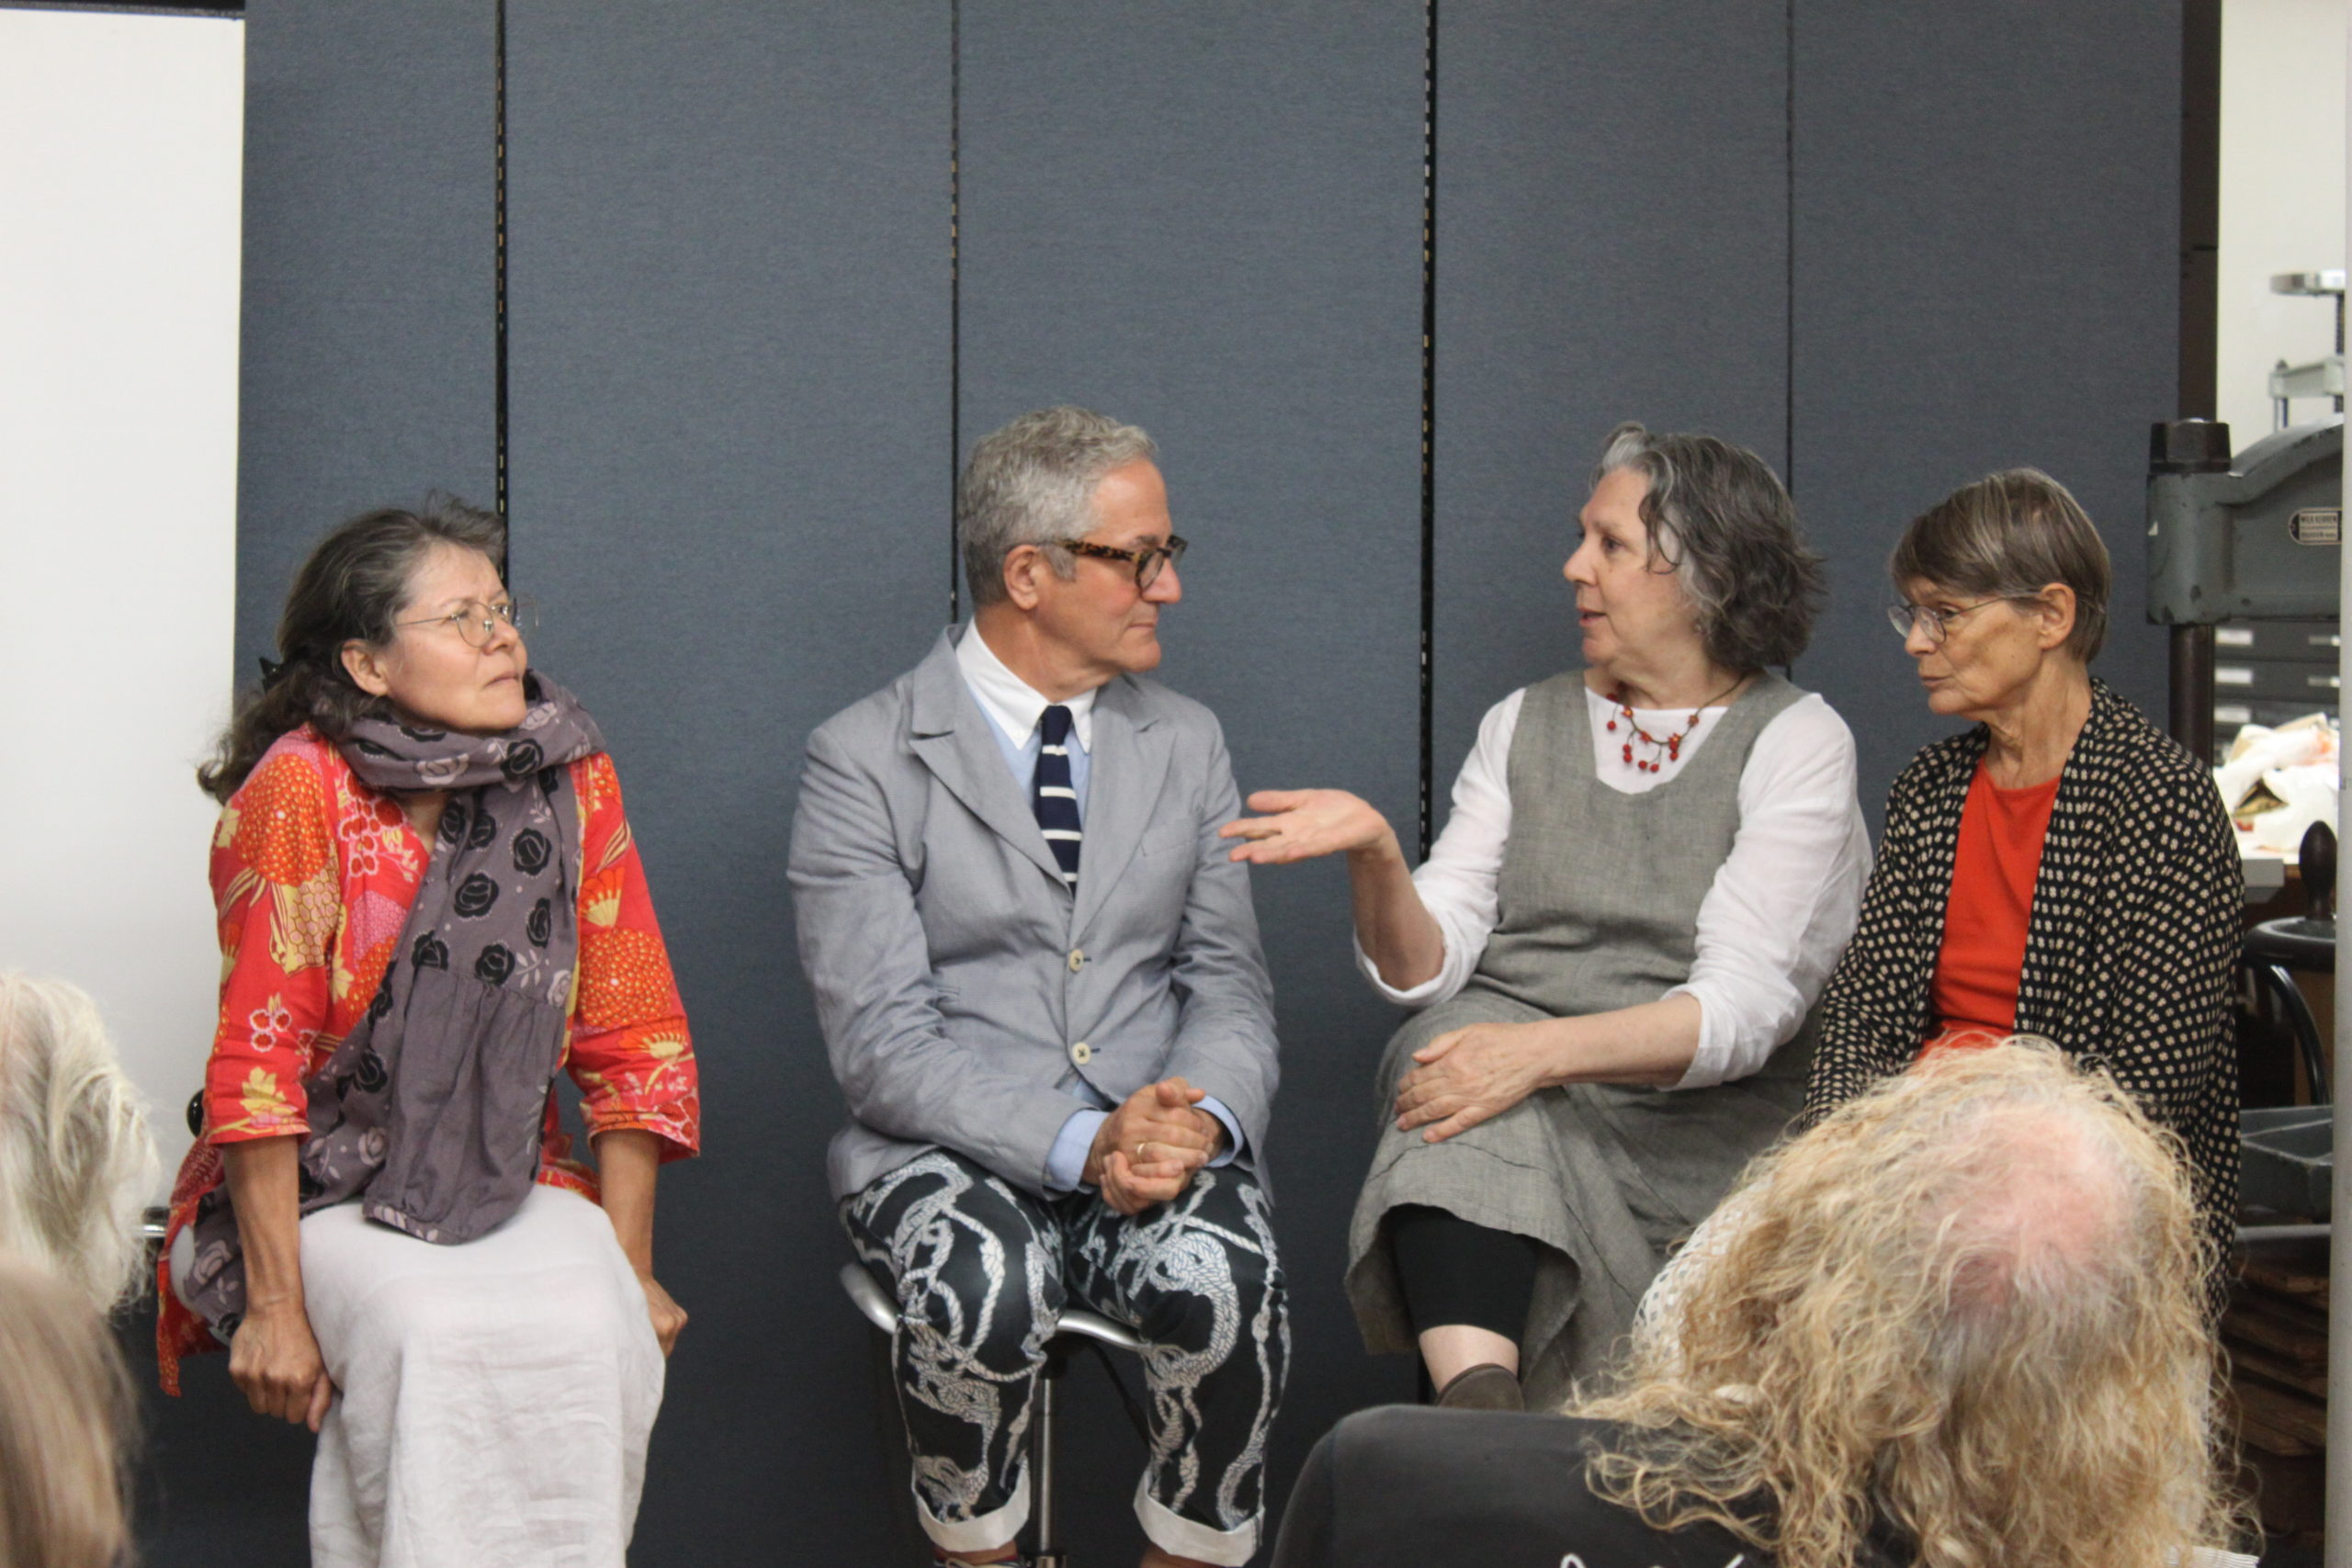 Louise Marie Cumont, Stephen Guarnsccia, Barbara Mauriello, and Elizabeth Lotic at Center for Book Arts, 2018